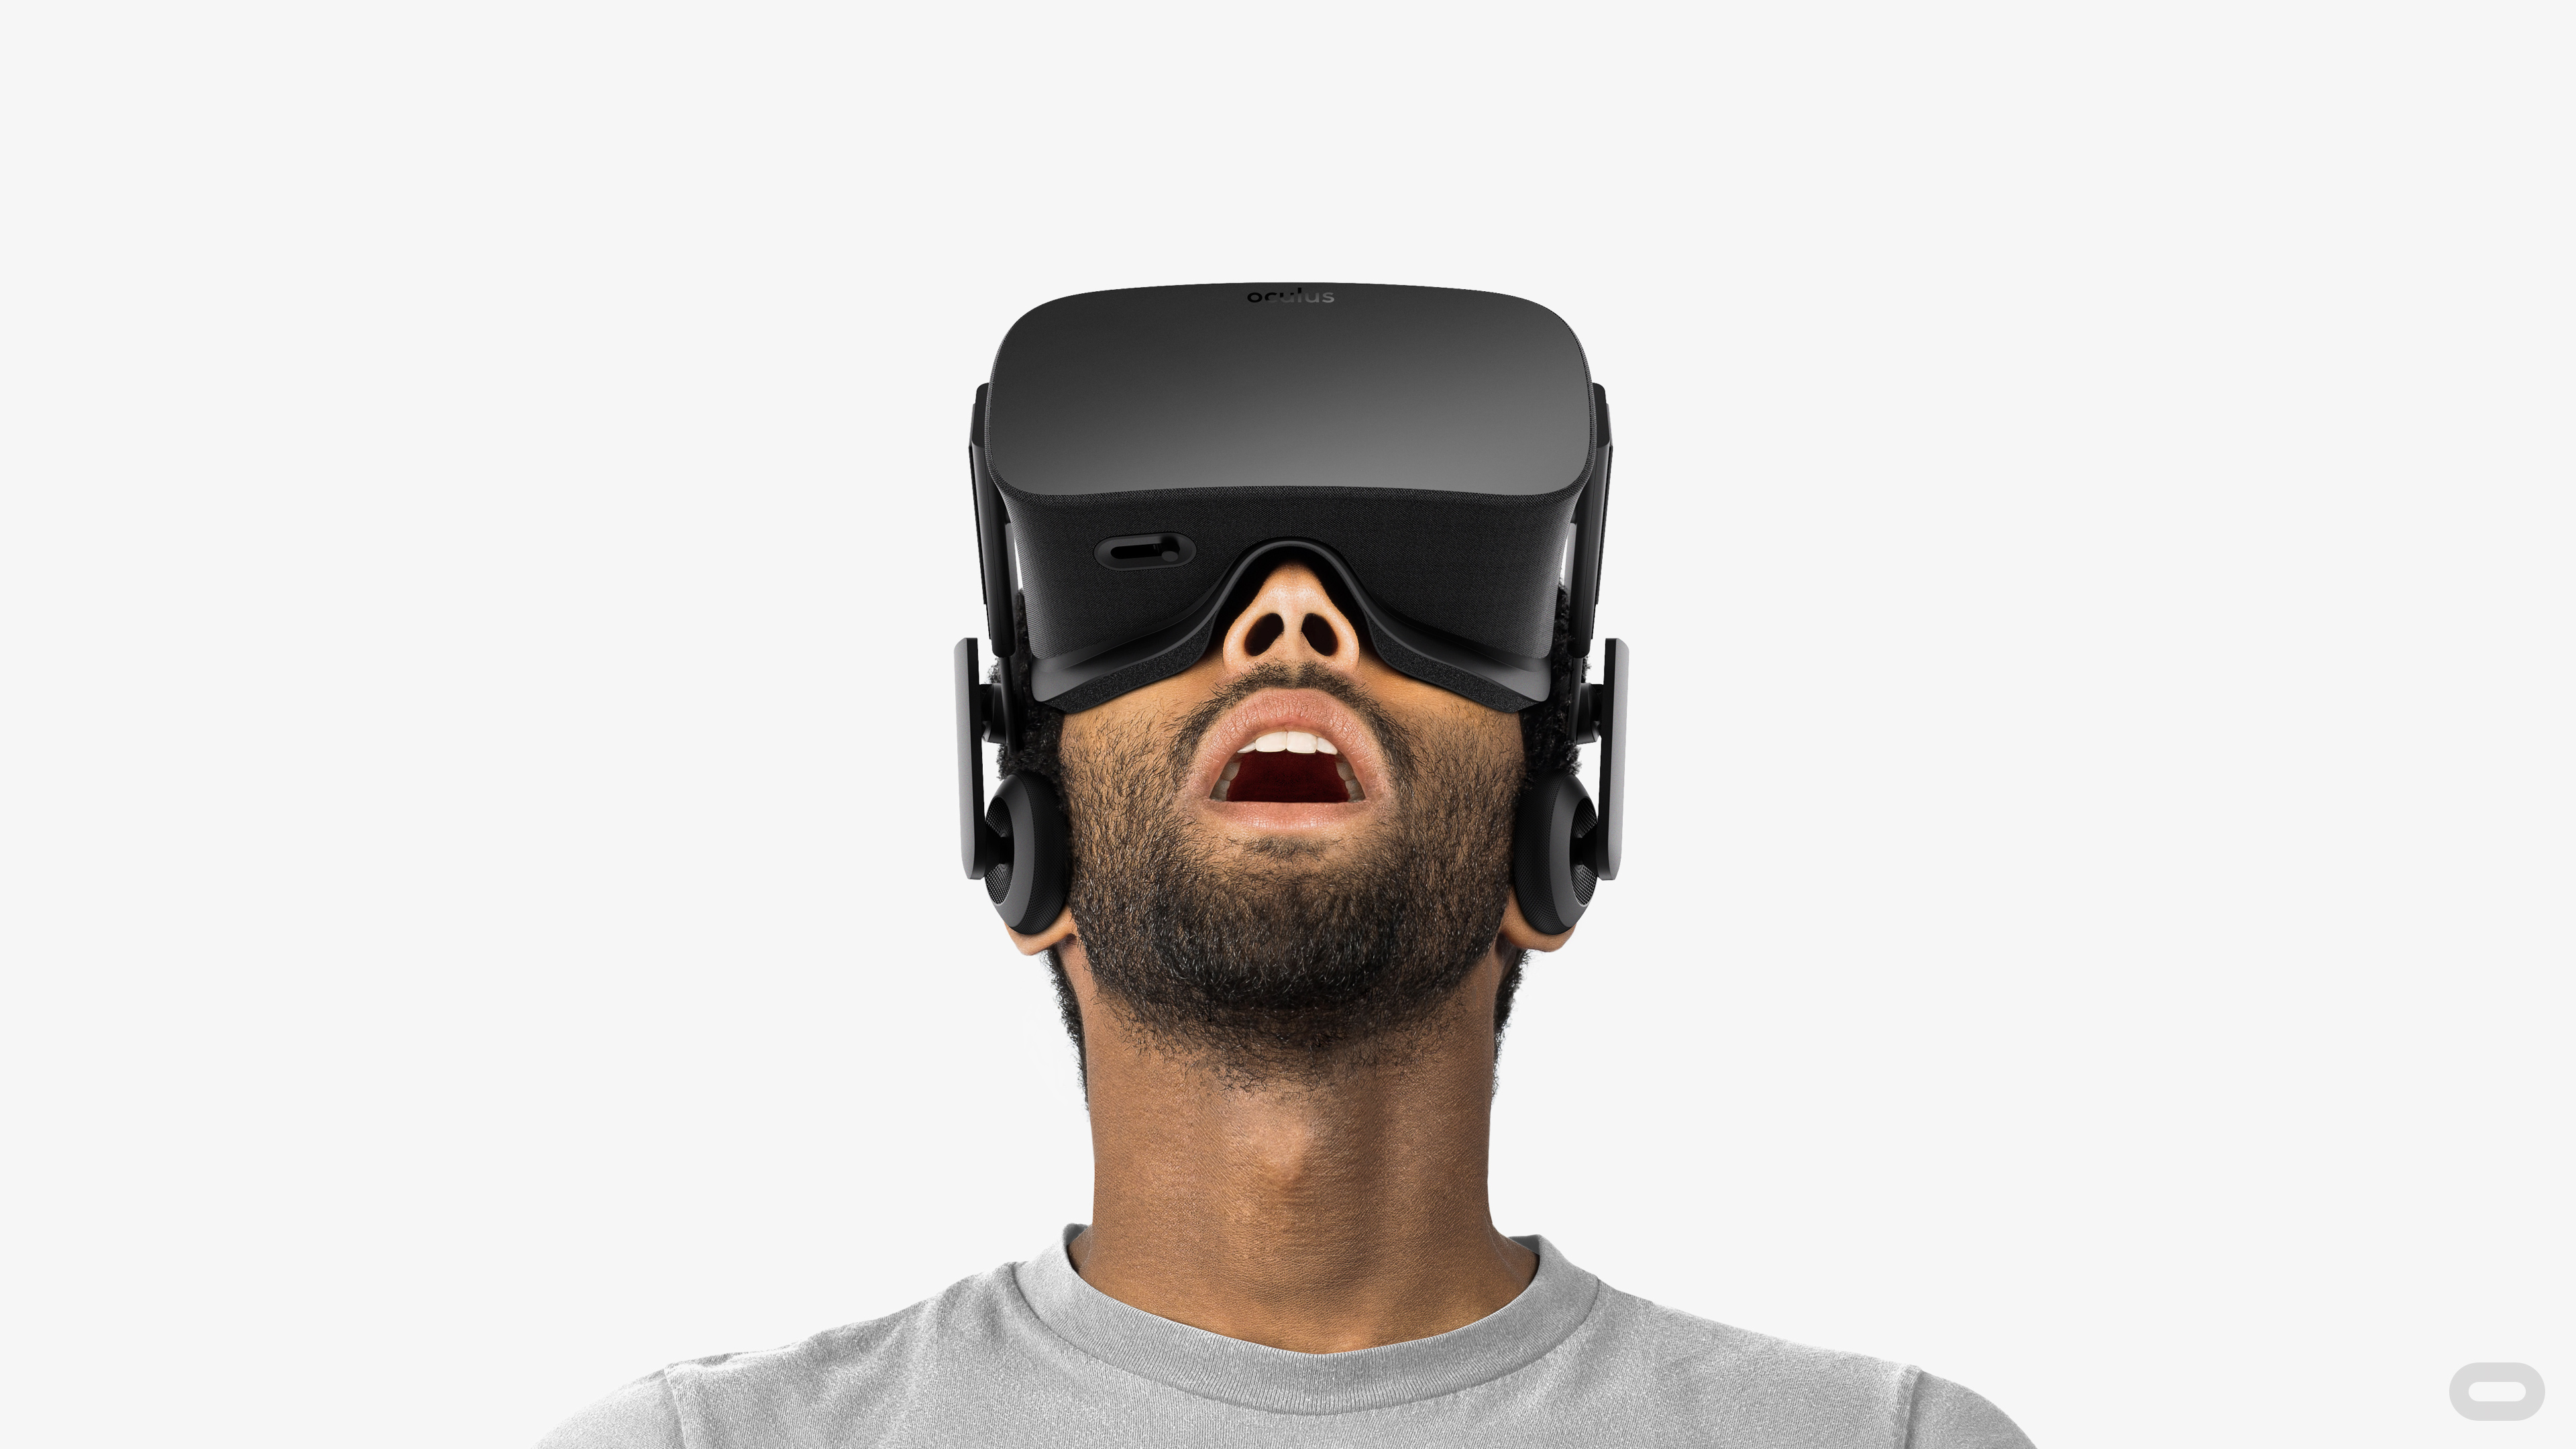 Day-Long Oculus Rift Outage 'Due To Administrative Error'